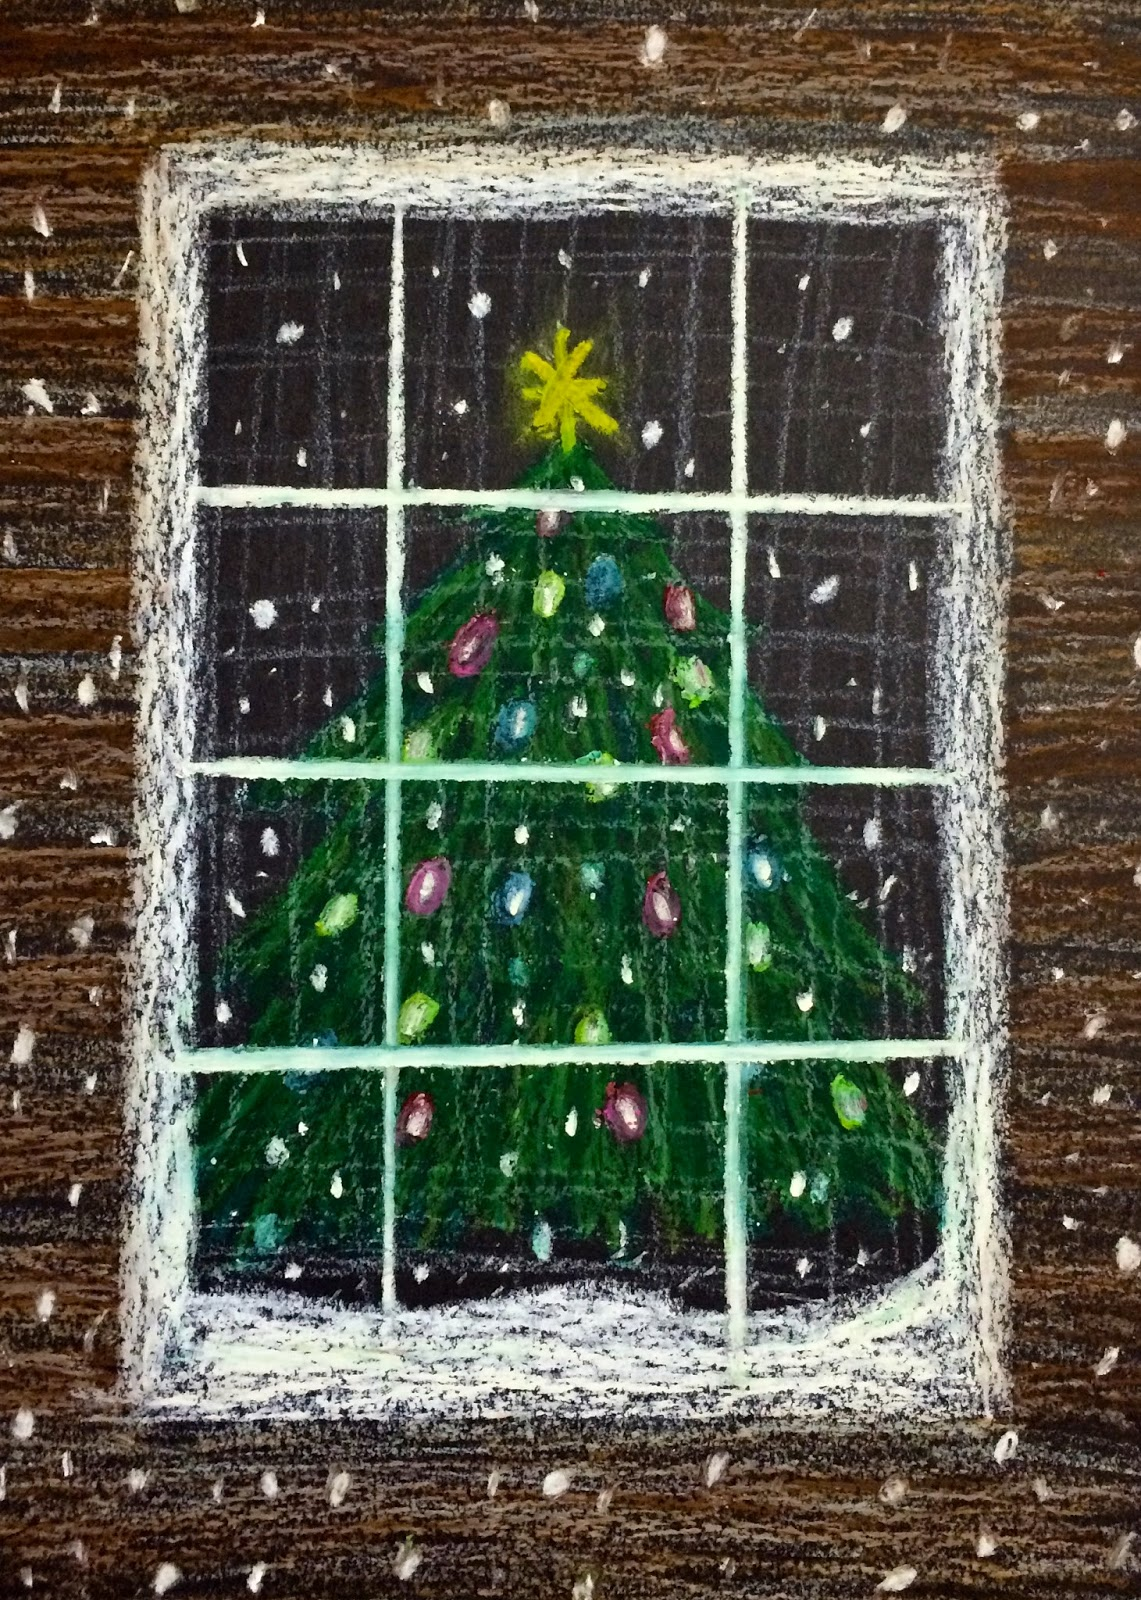 Oil Pastel Christmas Tree in a Snowstorm & Kathy\u0027s AngelNik Designs \u0026 Art Project Ideas: Oil Pastel Christmas ...